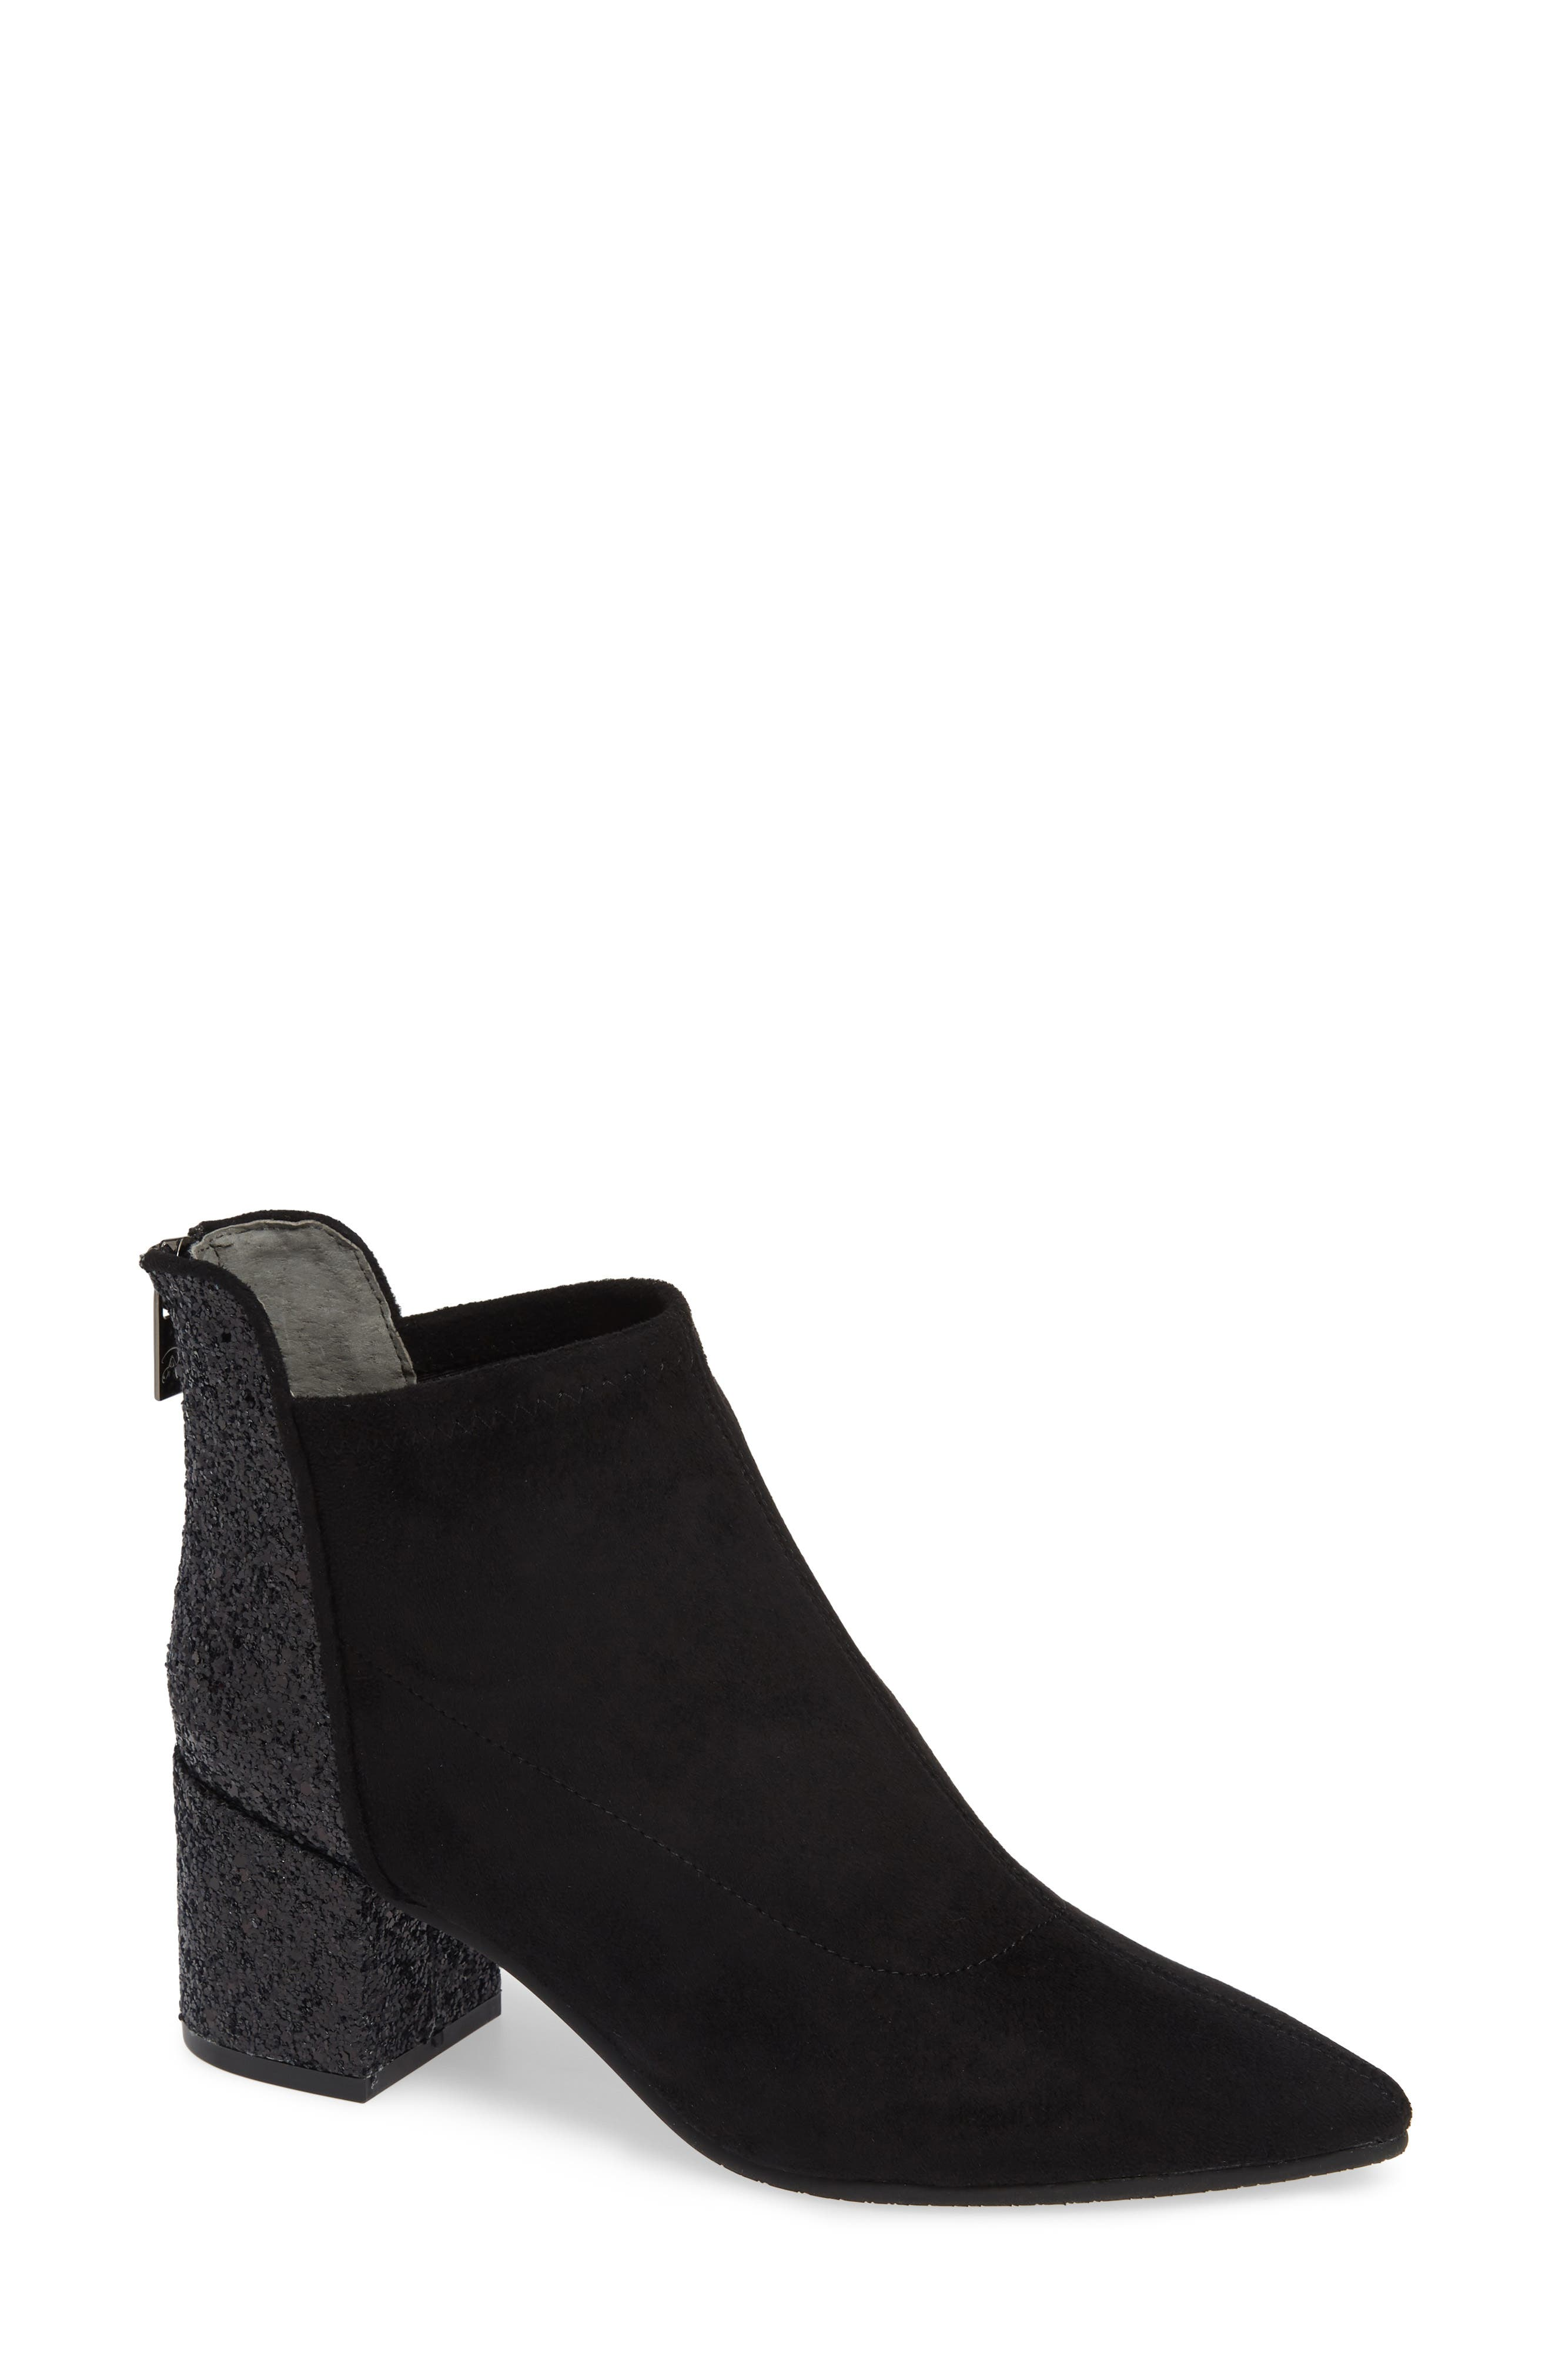 Adrianna Papell Honey Pointy Toe Stretch Bootie